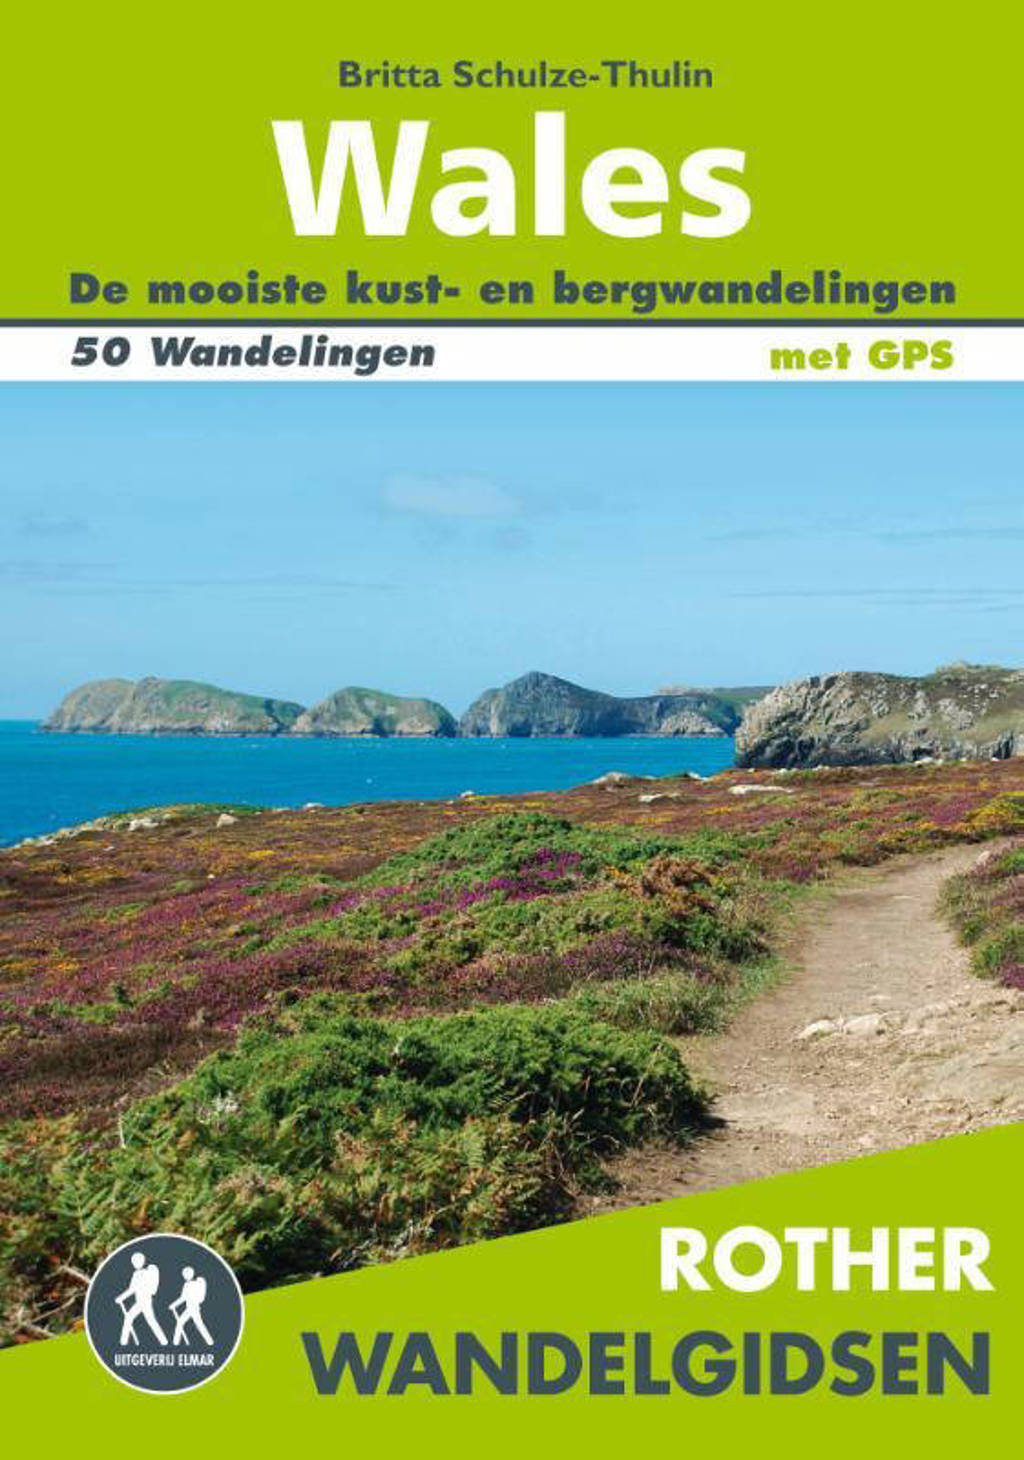 Rother wandelgids Wales - Britta Schulze-thulin